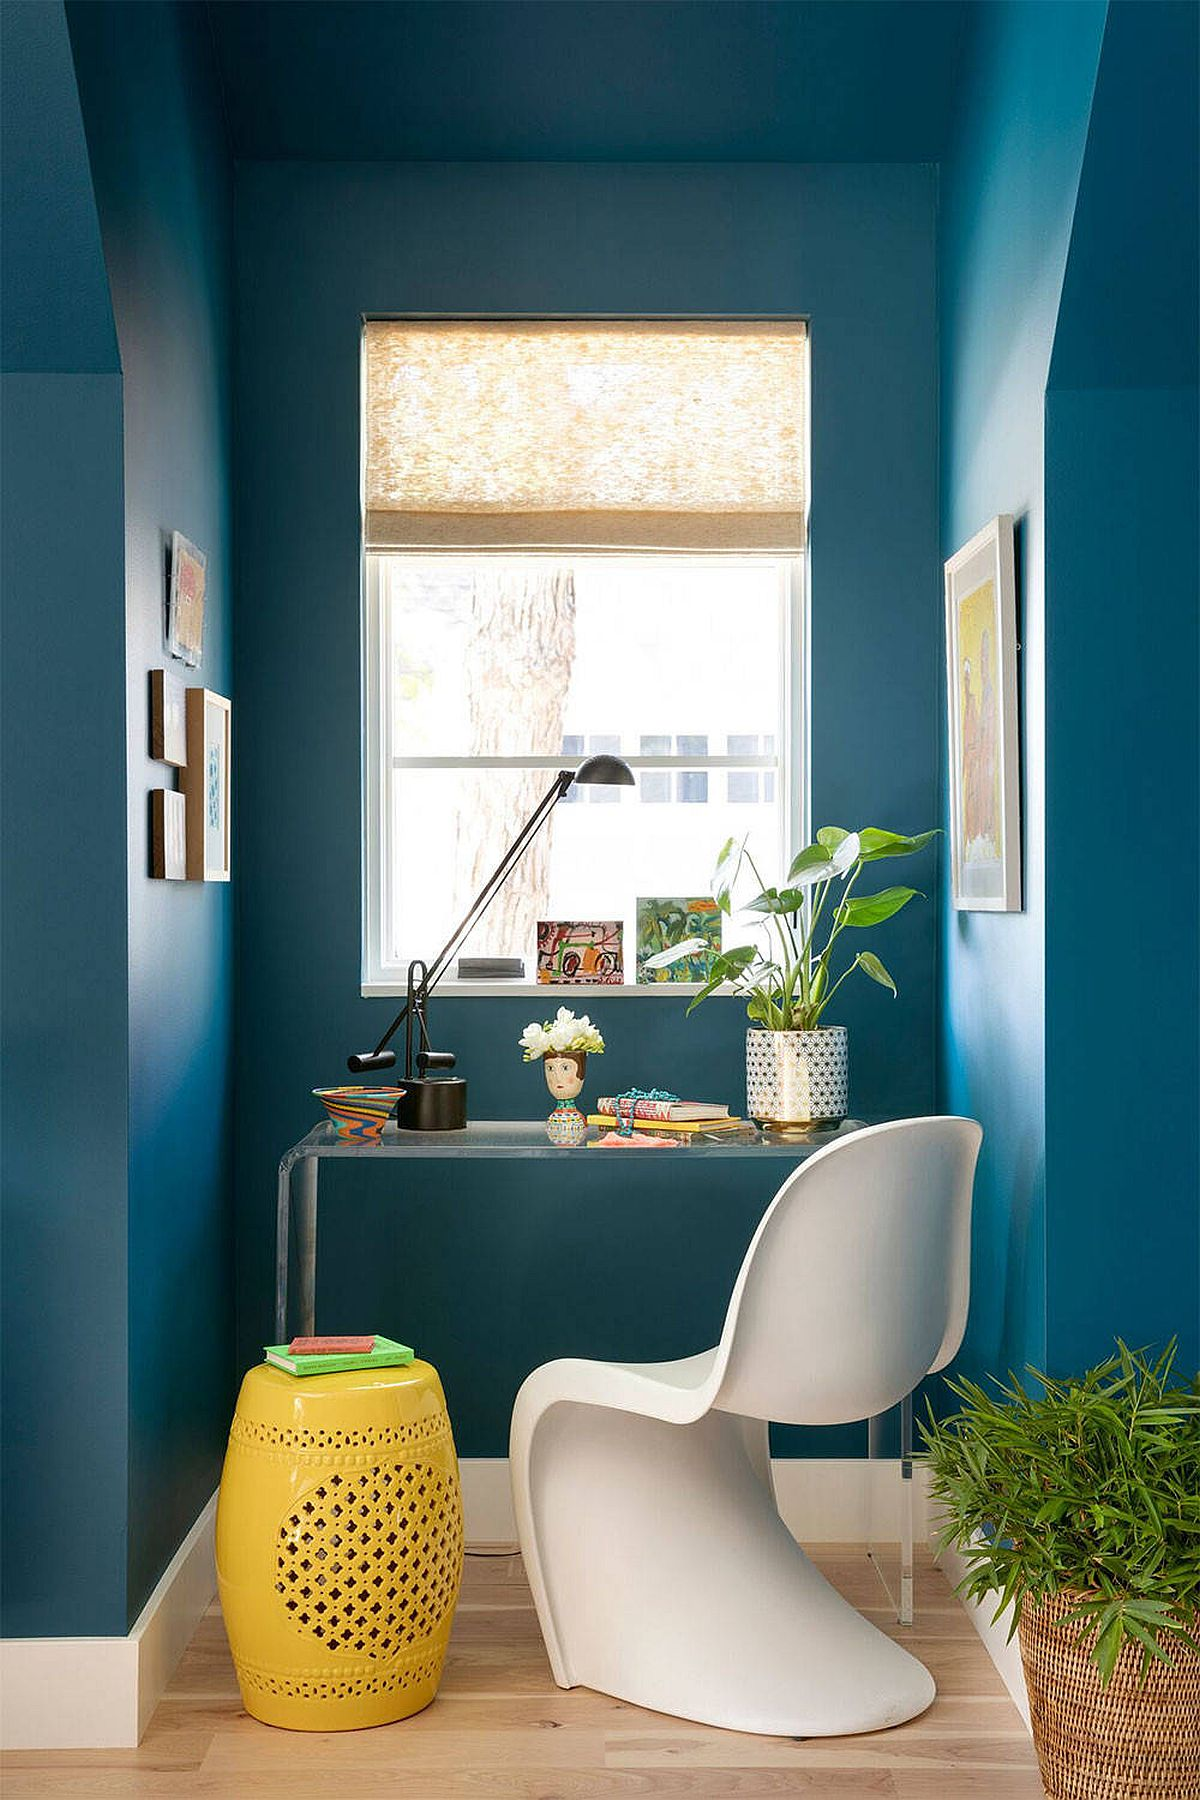 Exquisite-blue-home-office-with-modern-eclectic-style-and-just-a-dash-of-yellow-56046